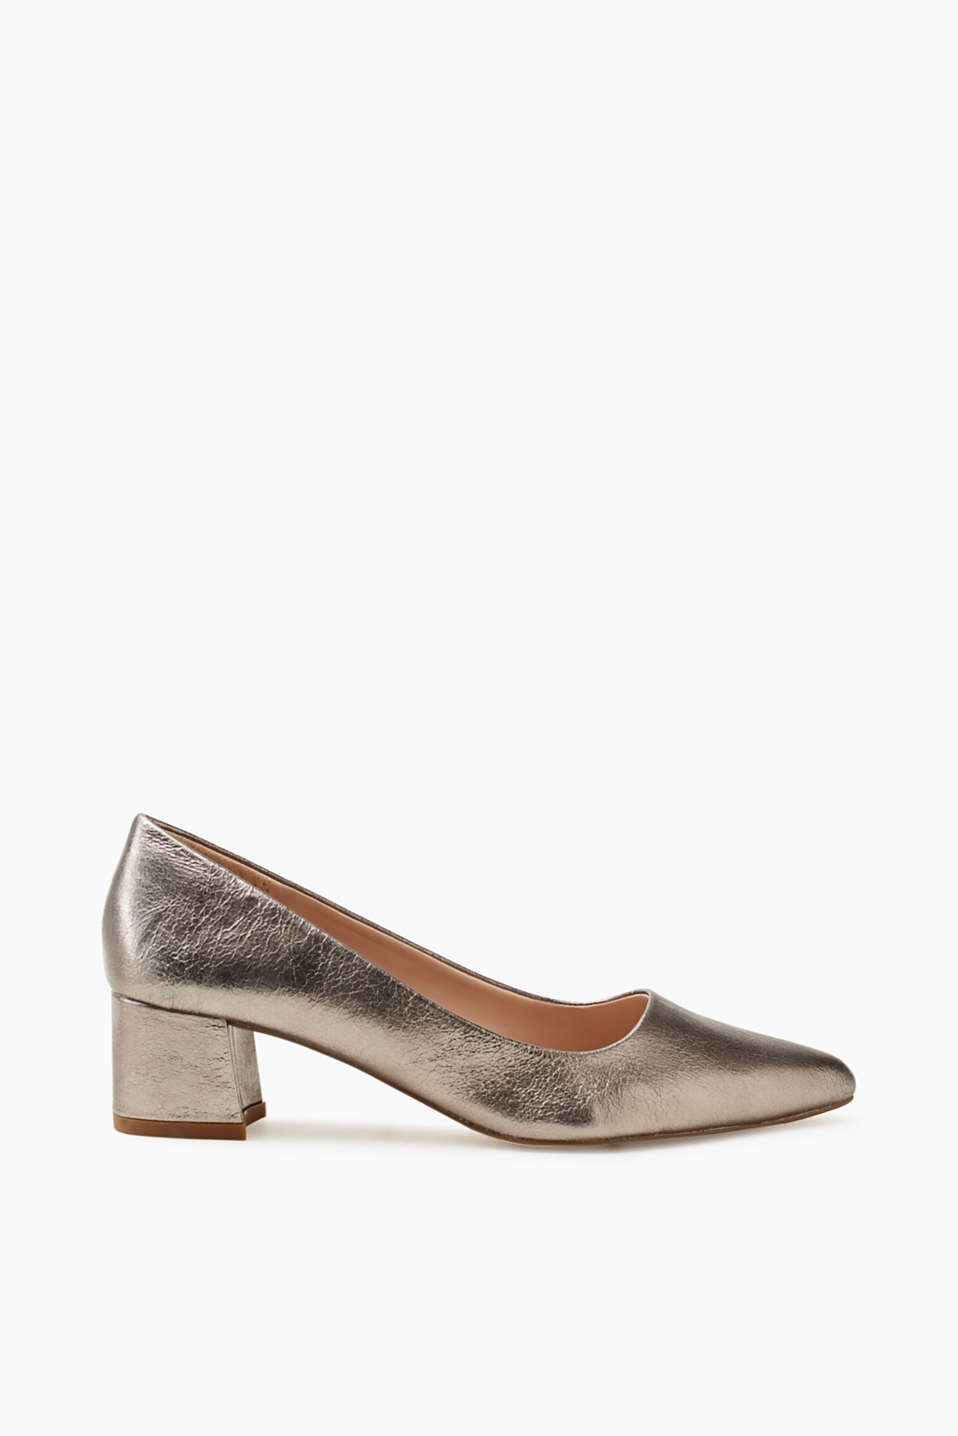 Esprit - Zeitloser Metallic-Pumps mit Blockabsatz